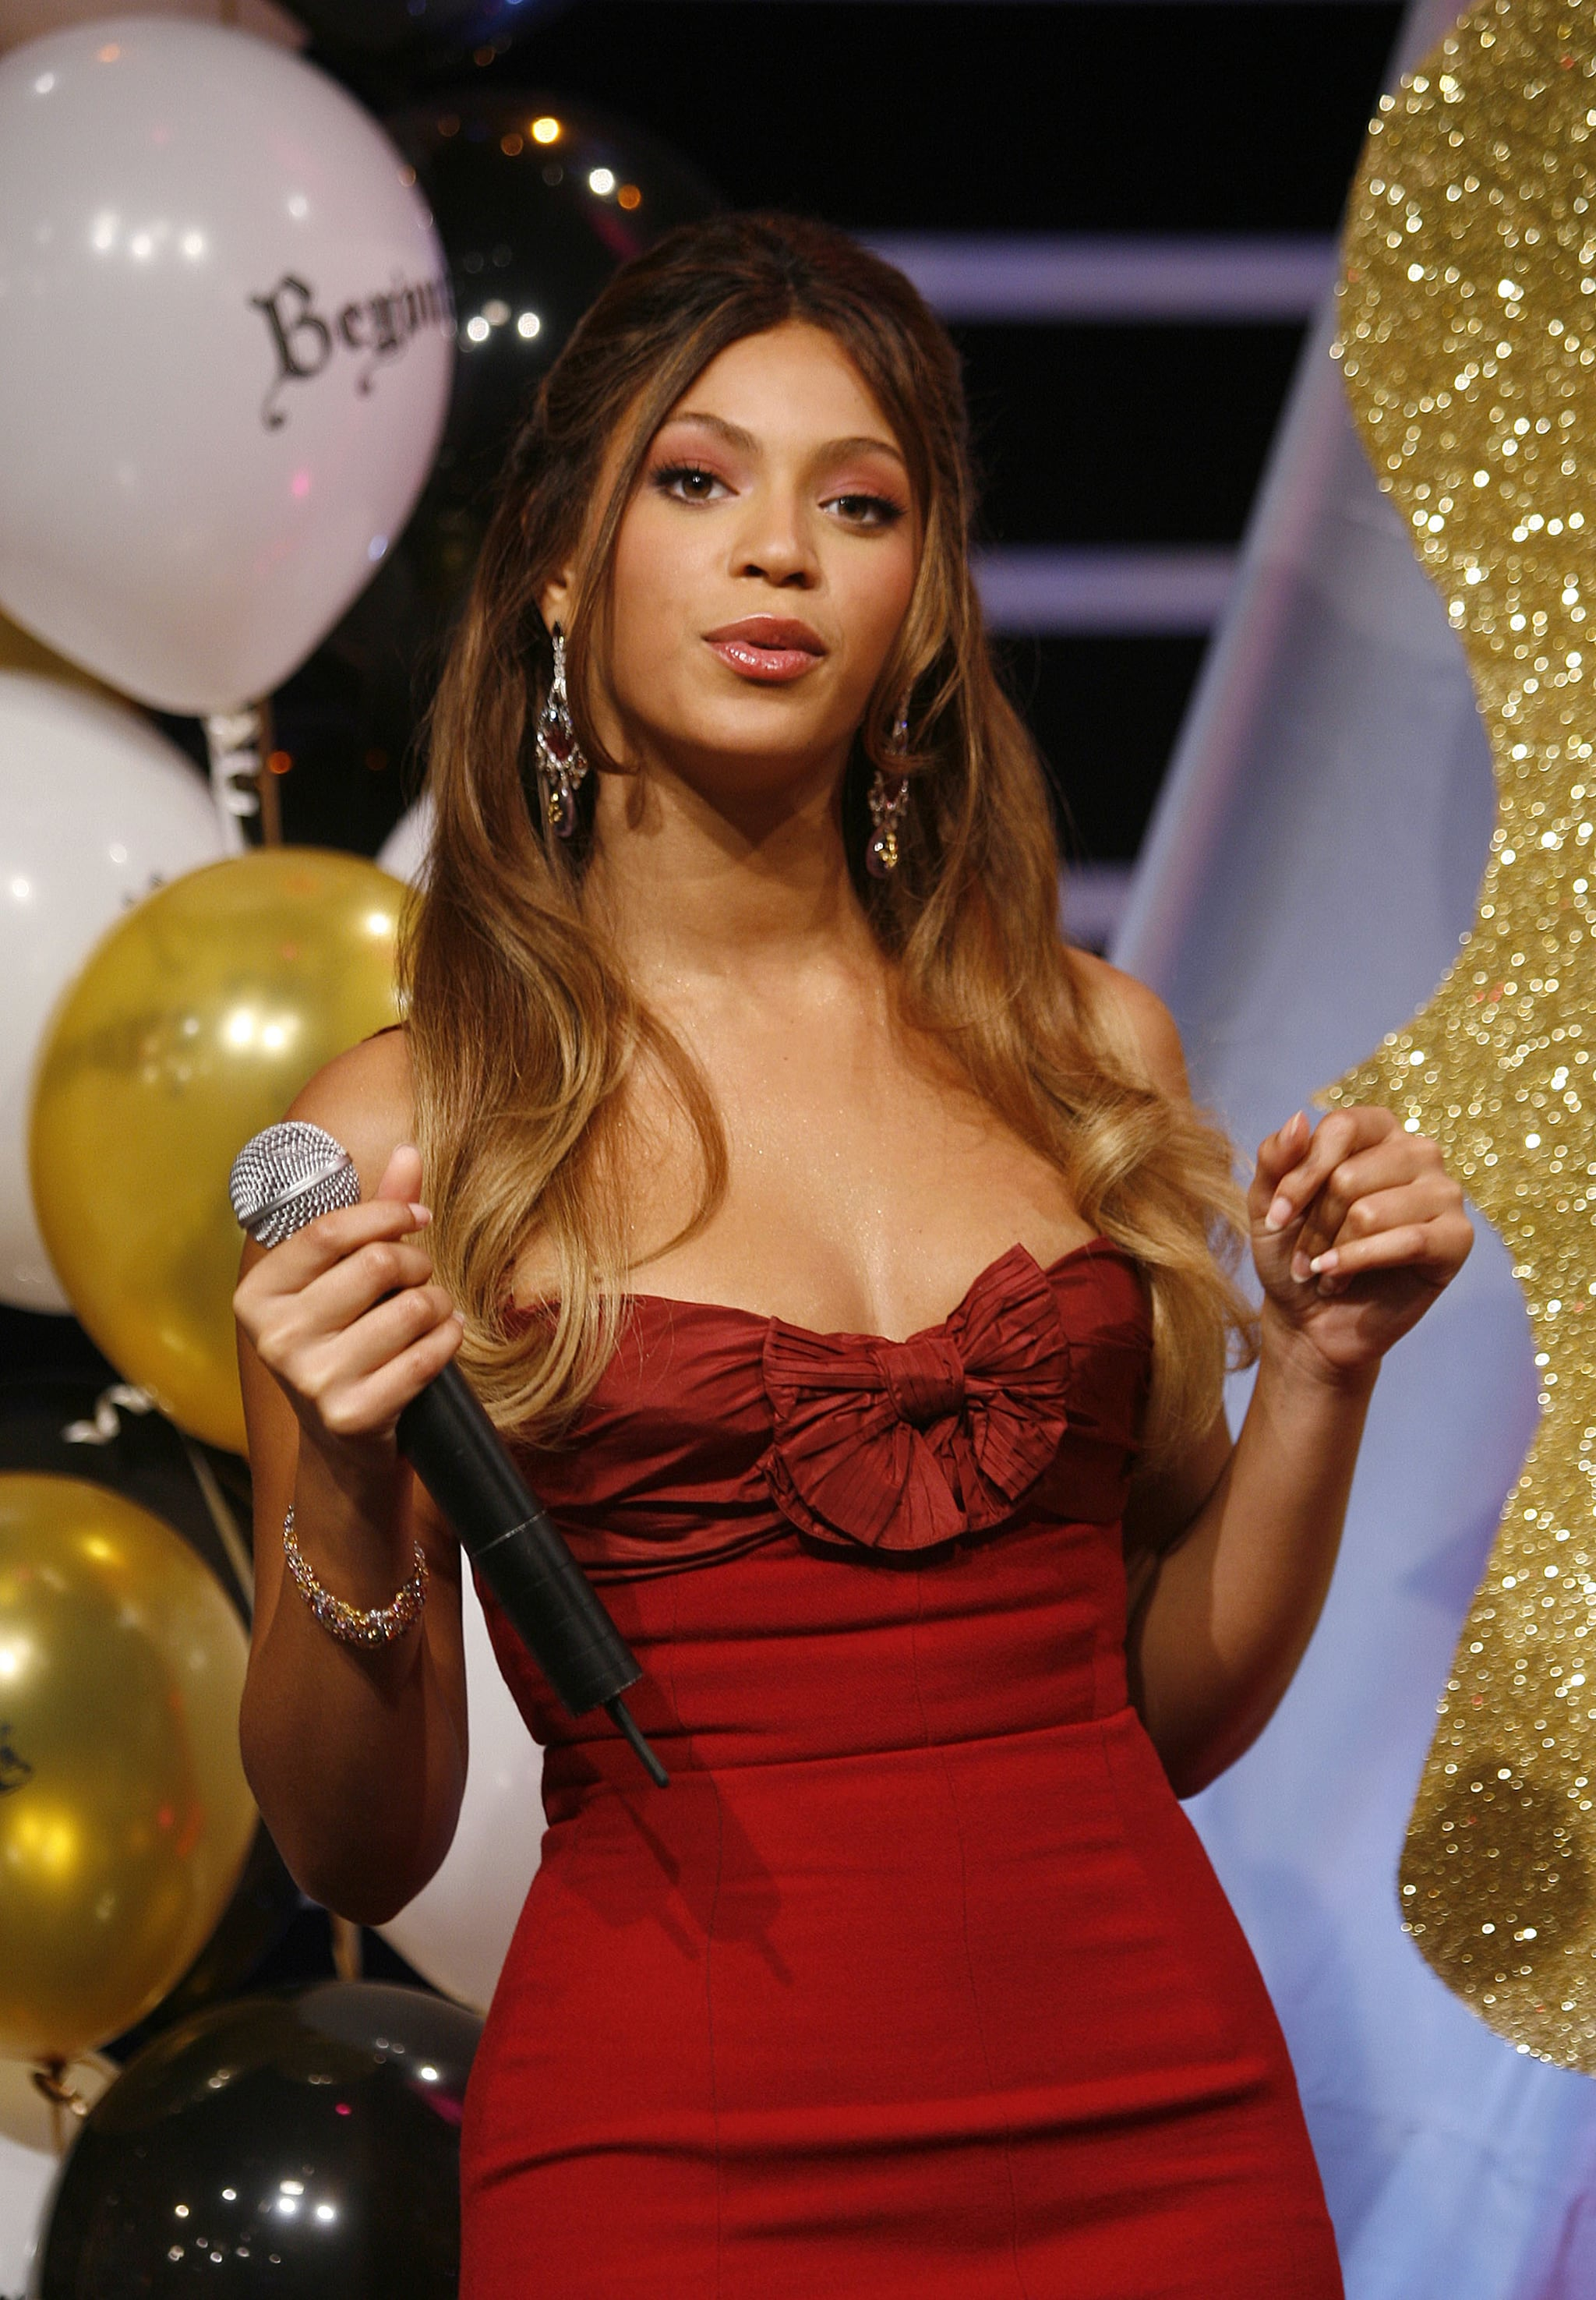 Beyonce's New B'Day Bling | POPSUGAR Celebrity